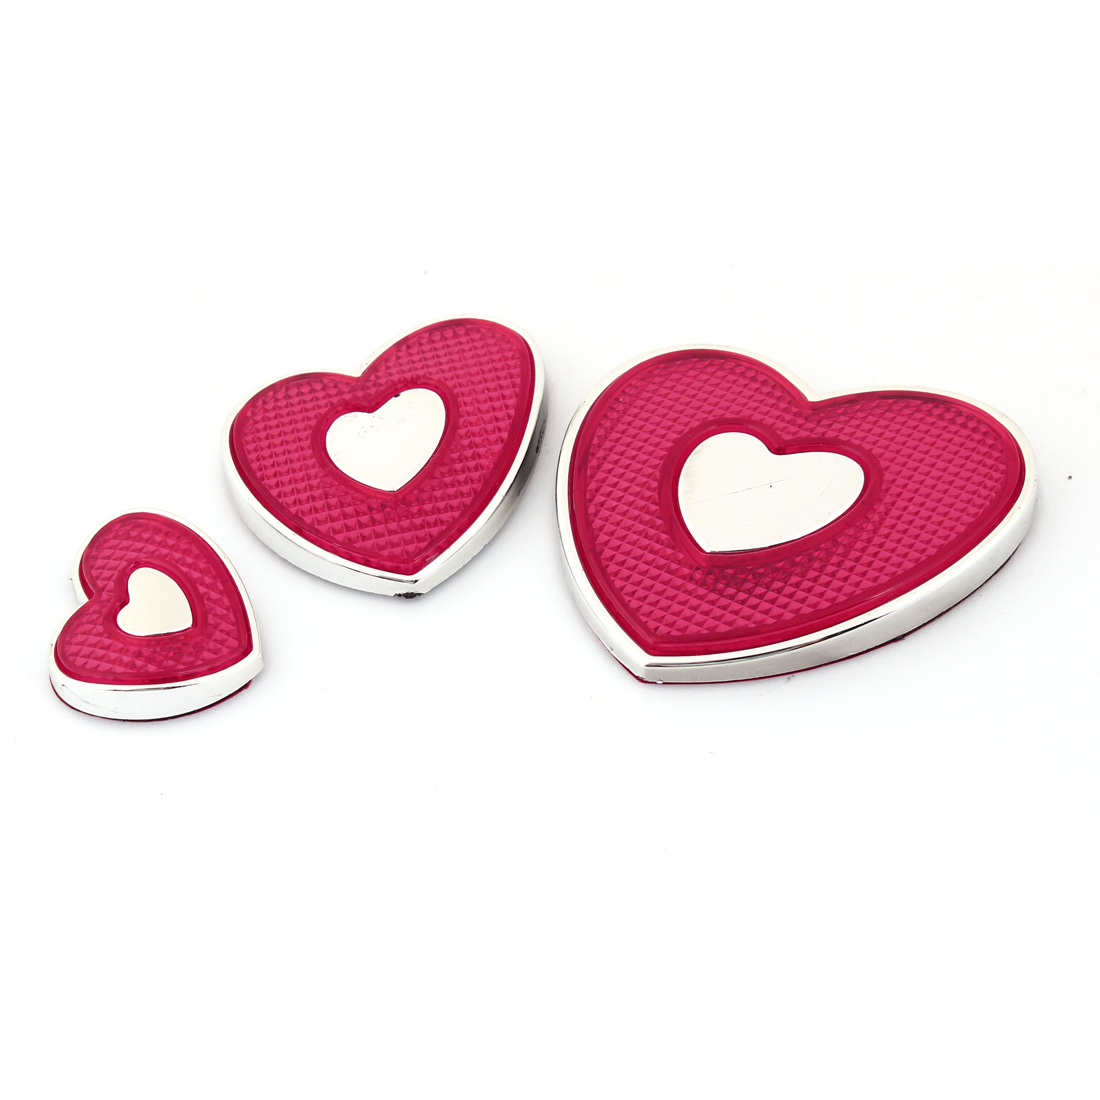 Silver Tone Red Heart-shaped Adhesive Emblem Door Car Badge Stickers 3 Pcs